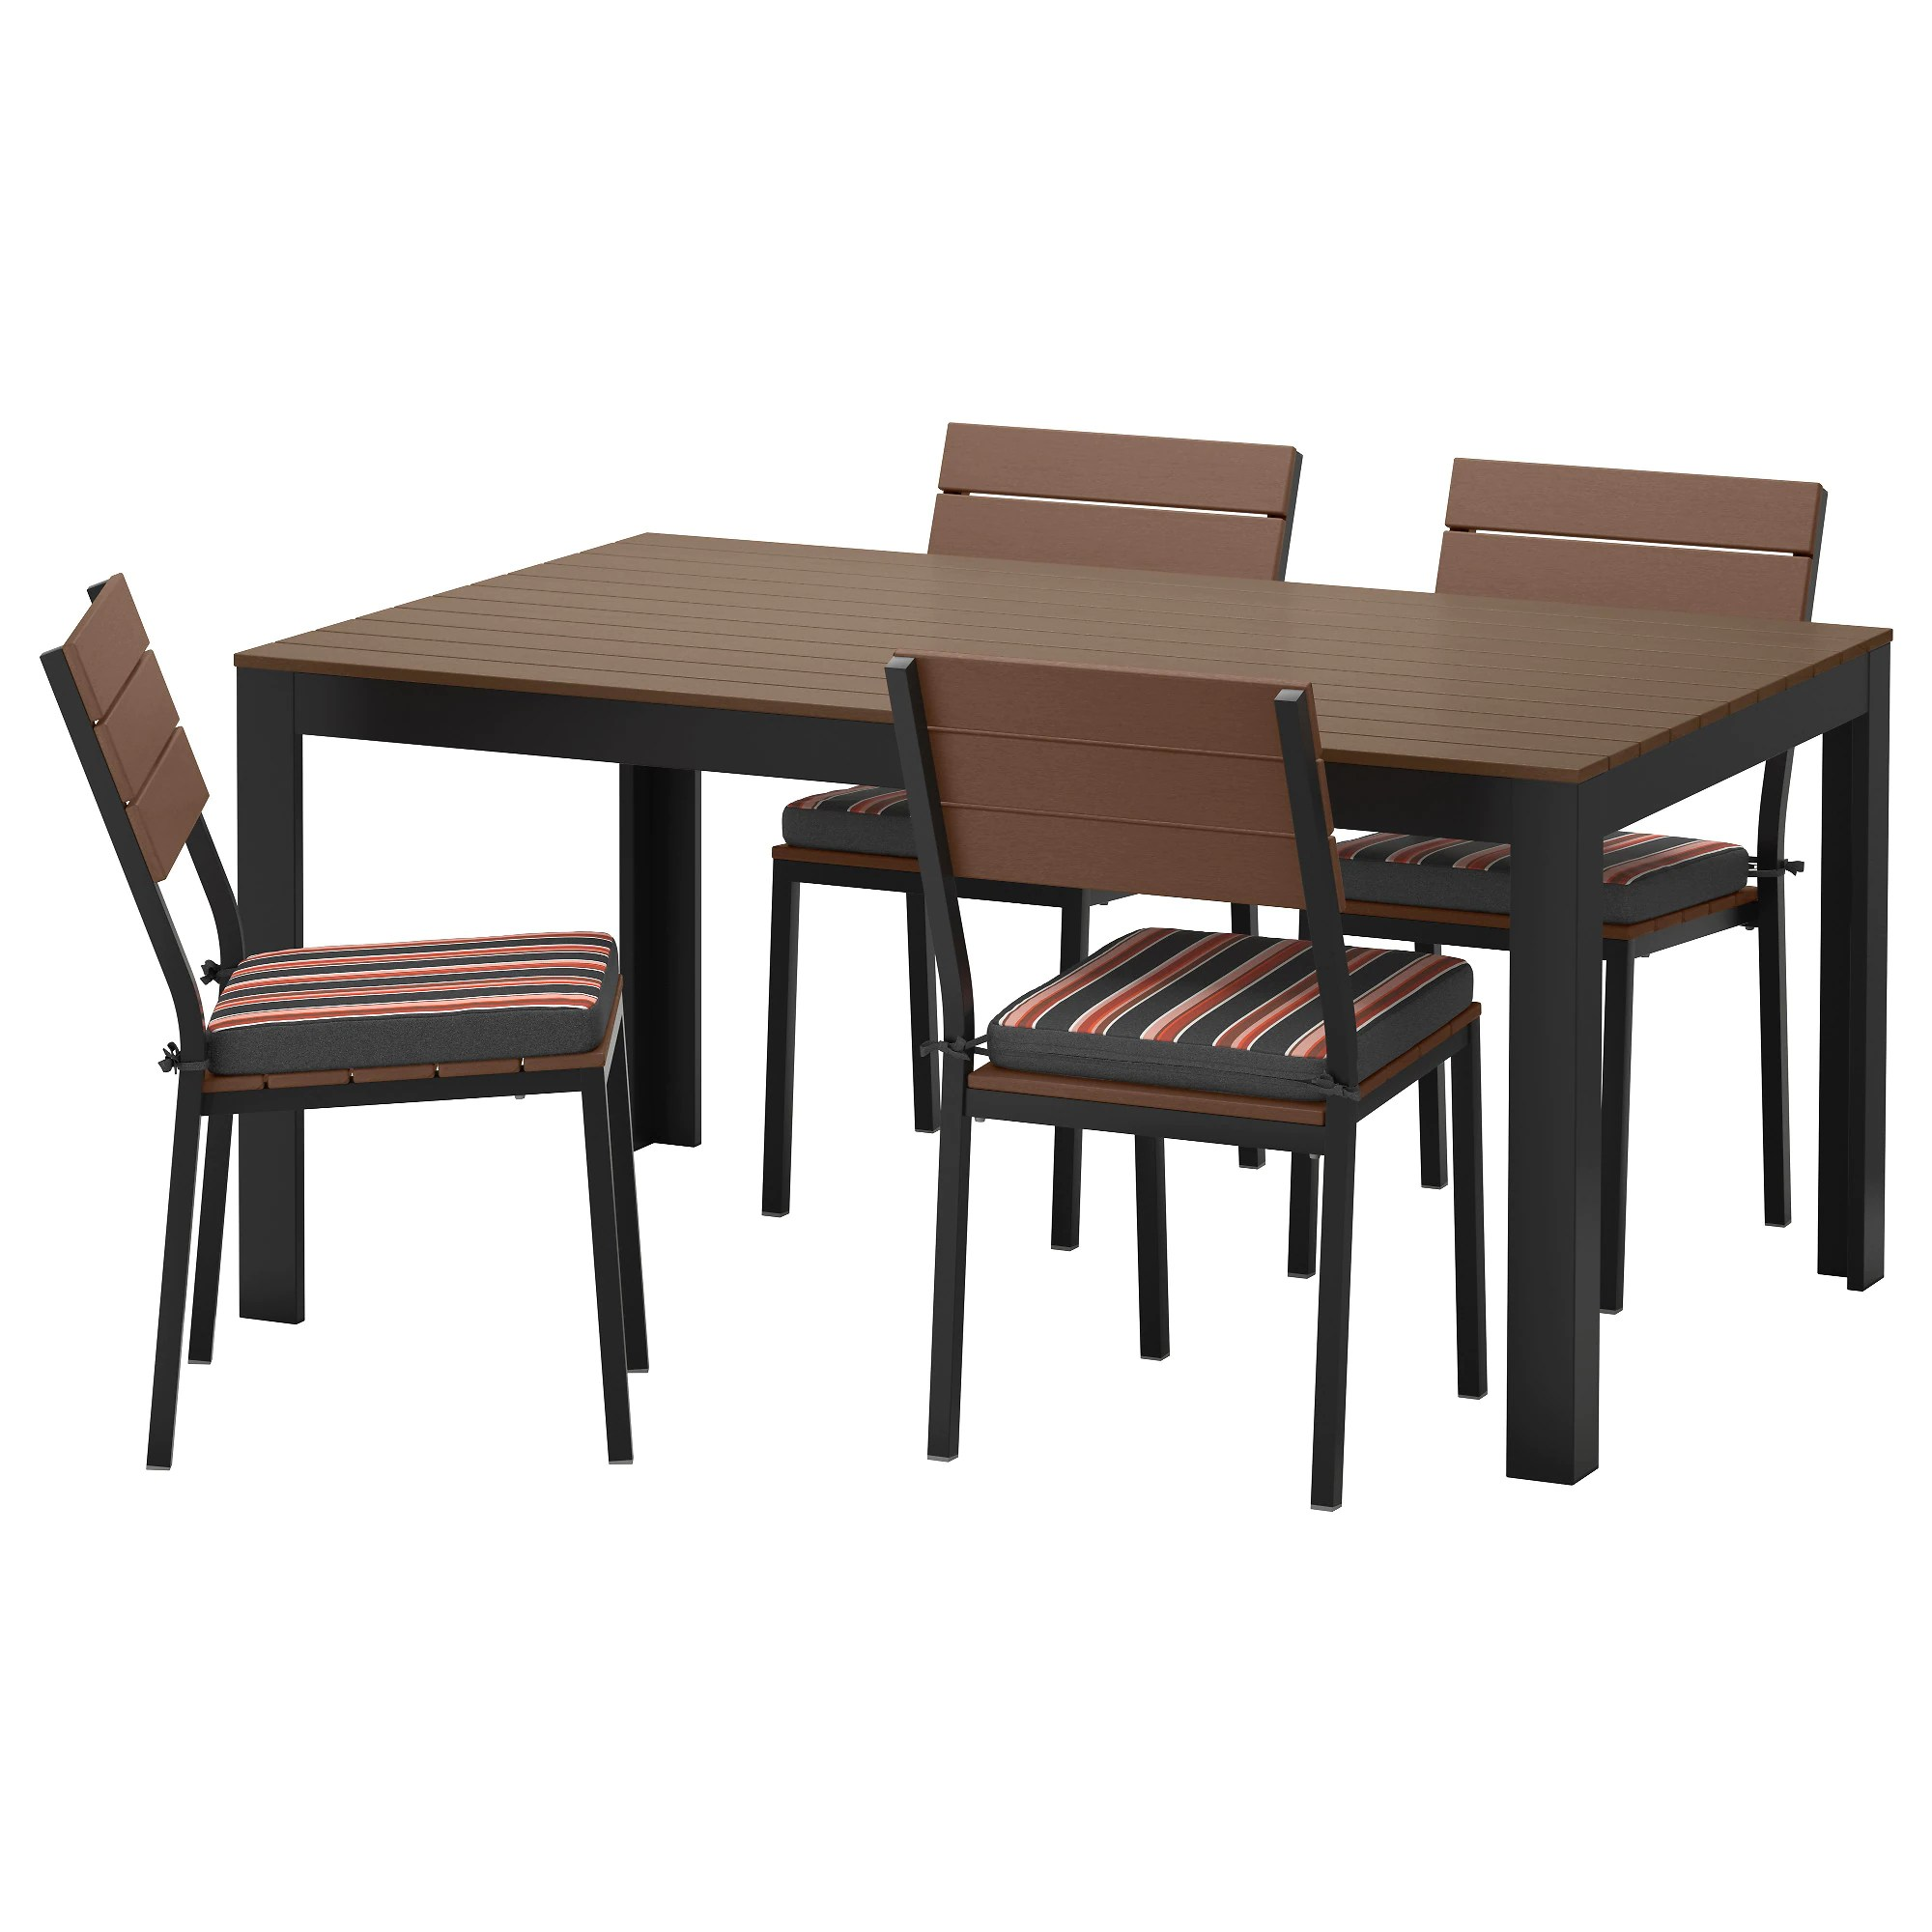 rolling kitchen chairs FALSTER table and 4 chairs outdoor black brown Eker n black